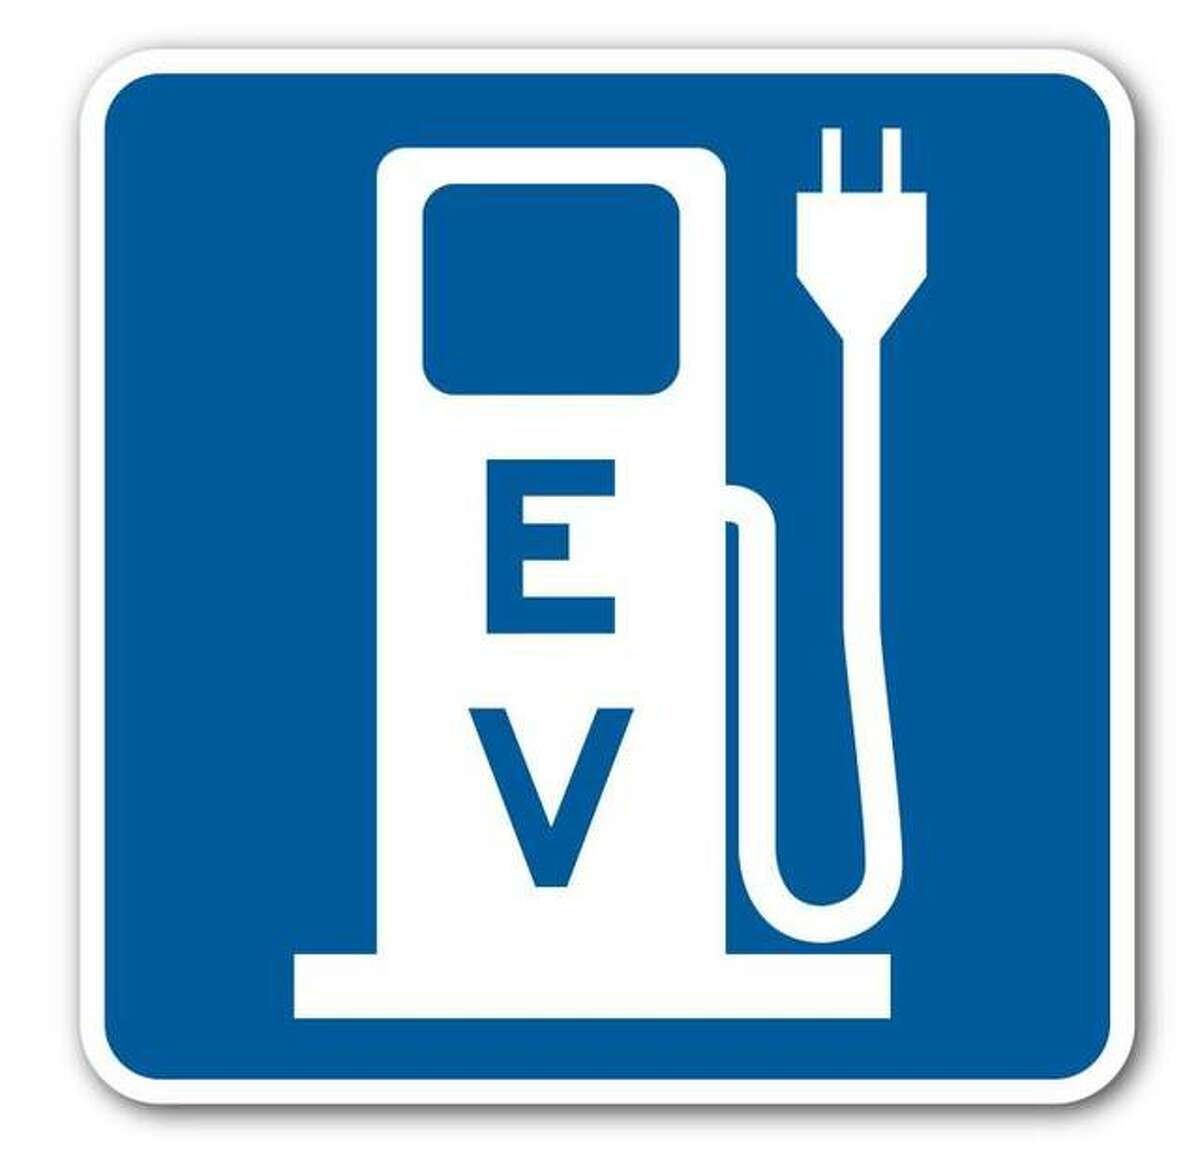 Nearly 20 electric vehicle charging stations are now available in Madison County.